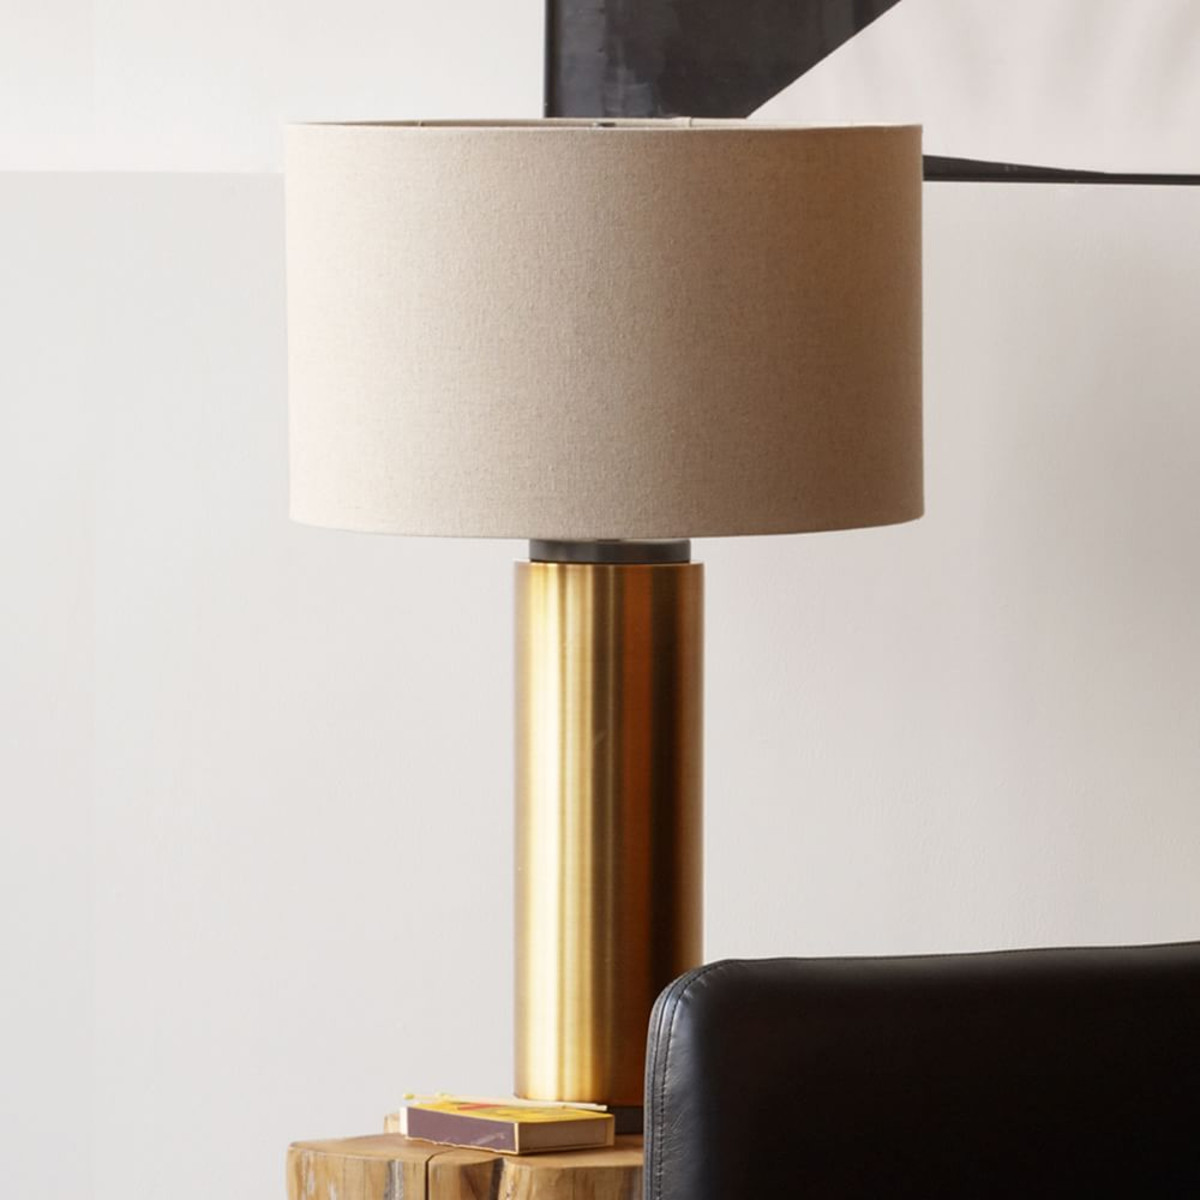 Antique wooden table lamps - Top 10 Best Modern Antique Brass Table Lamps